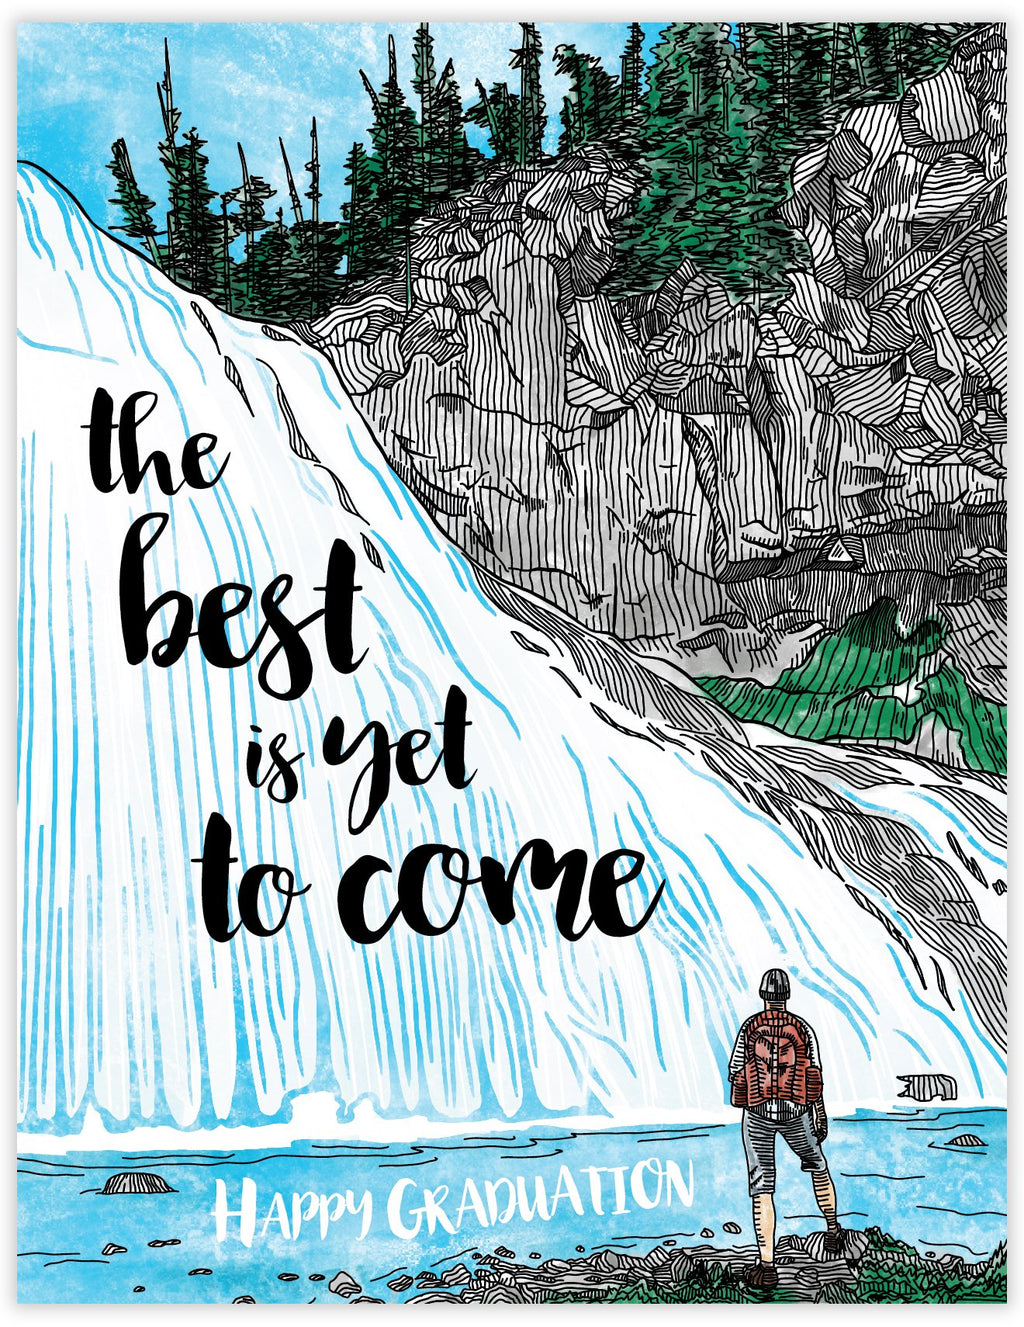 Best is yet to come waterfall graduation card